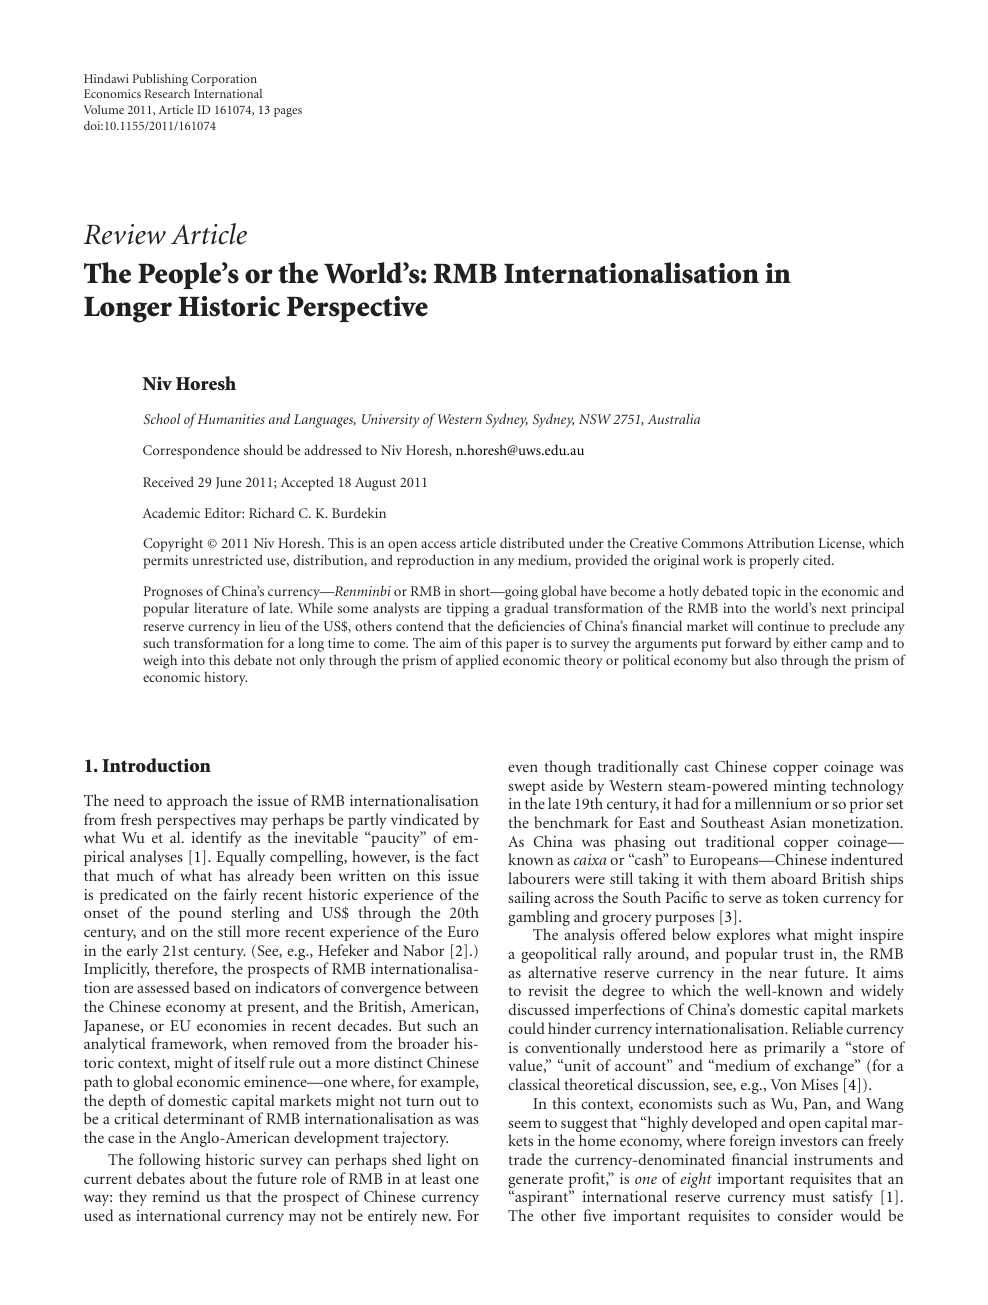 The People's or the World's: RMB Internationalisation in Longer